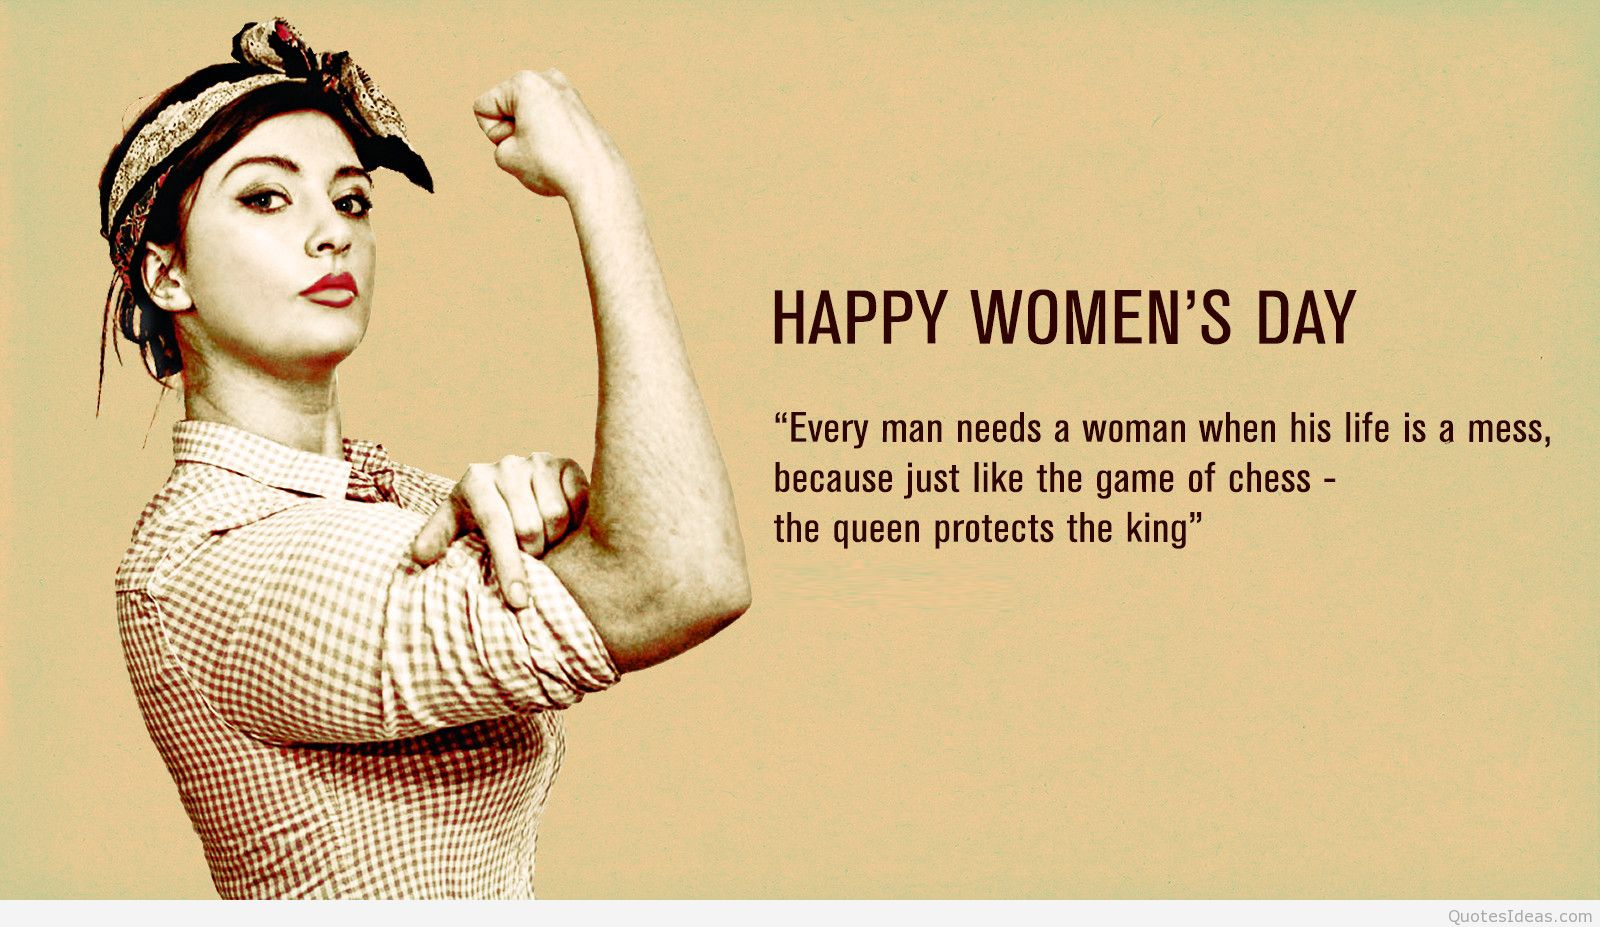 Happy Women's Day Quotes And Sayings thumbnail